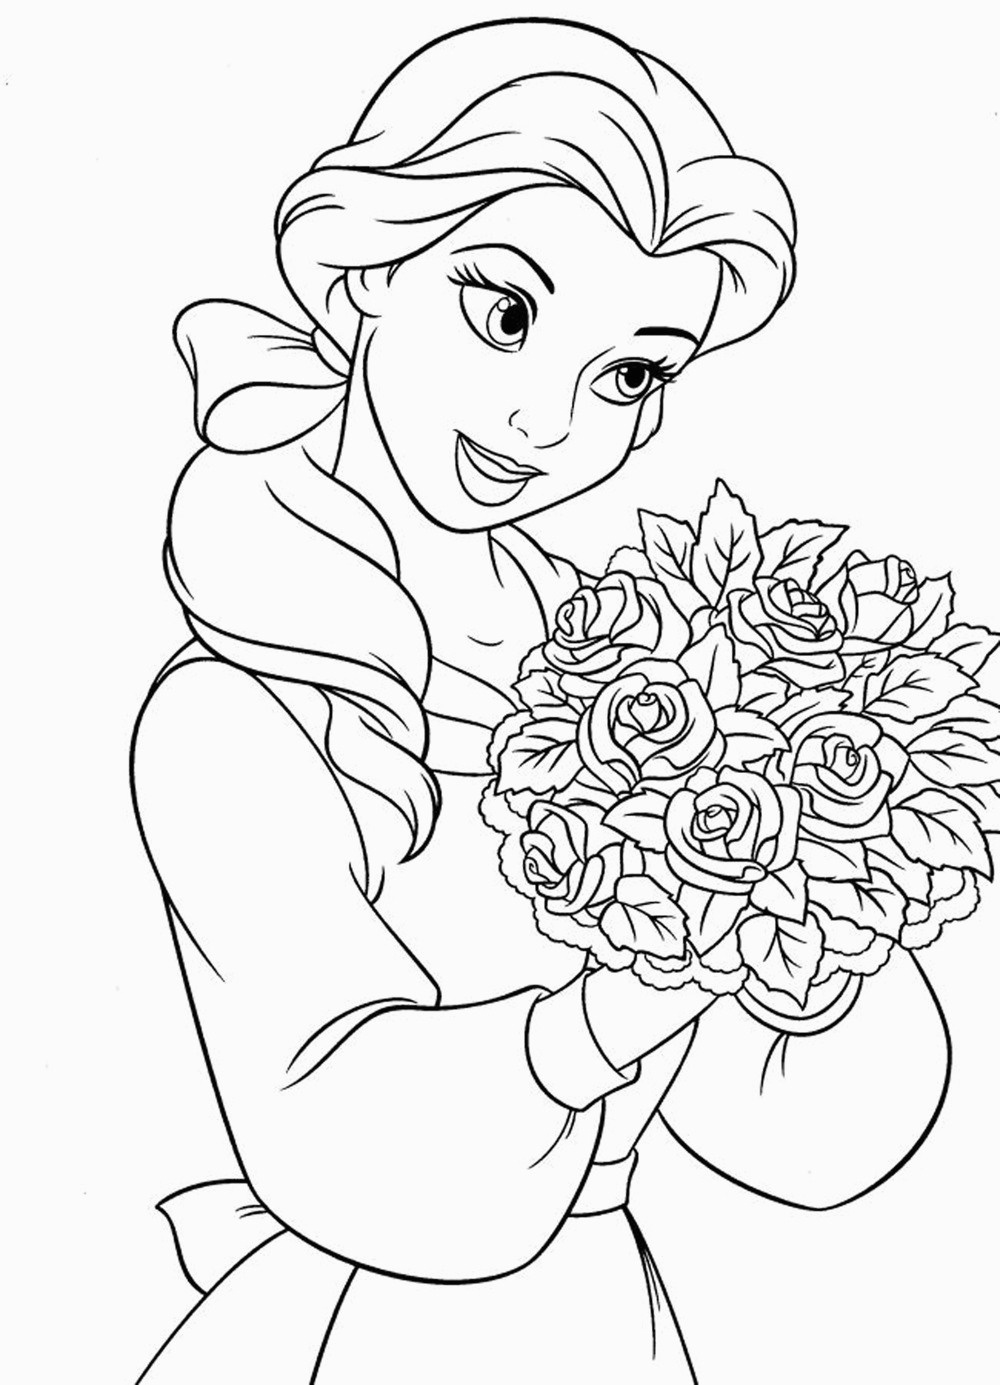 Coloring Pages : Free Printable Disney Coloring Pages To Print For - Free Printable Coloring Pages Of Disney Characters